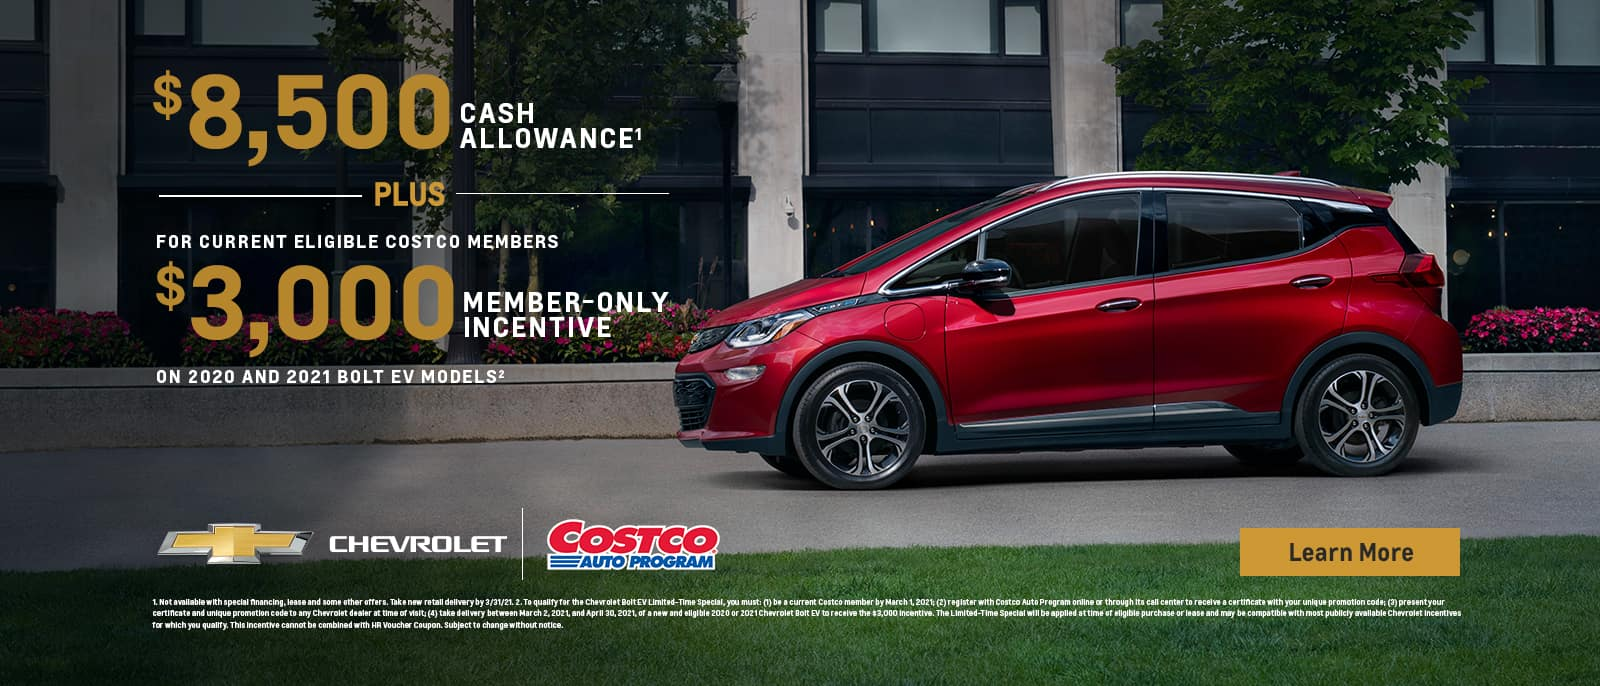 8500 cash allowance plus 3000 member-only incentive for current eligible costco members on 2020 and 2021 bolt ev models